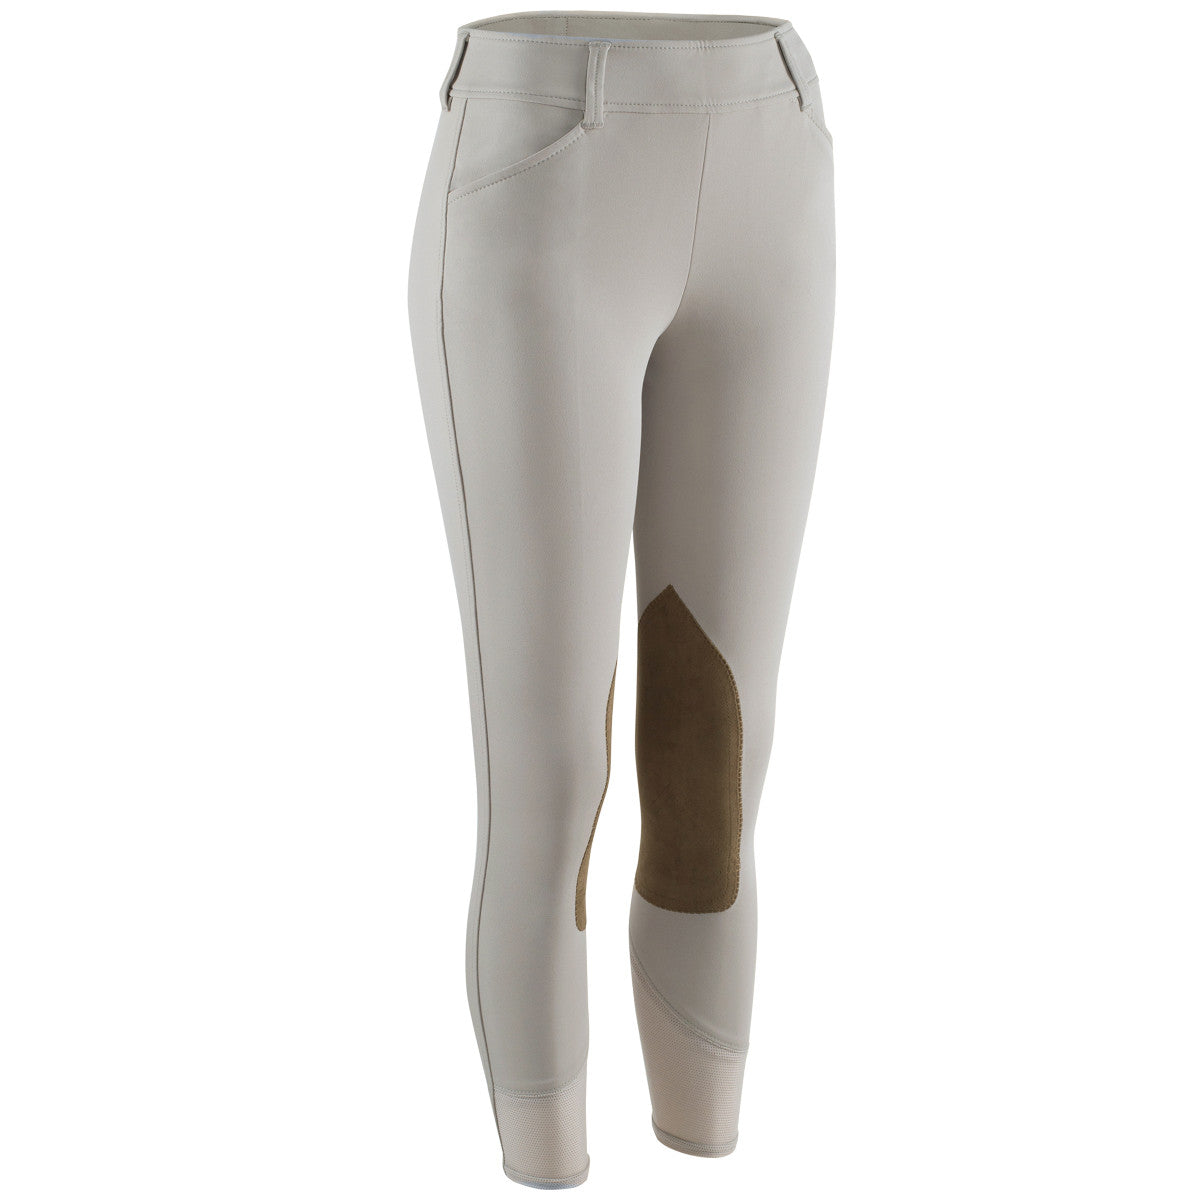 R.J. Classics Women's Belmont Mid-Rise Side Zip Knee Patch Breeches